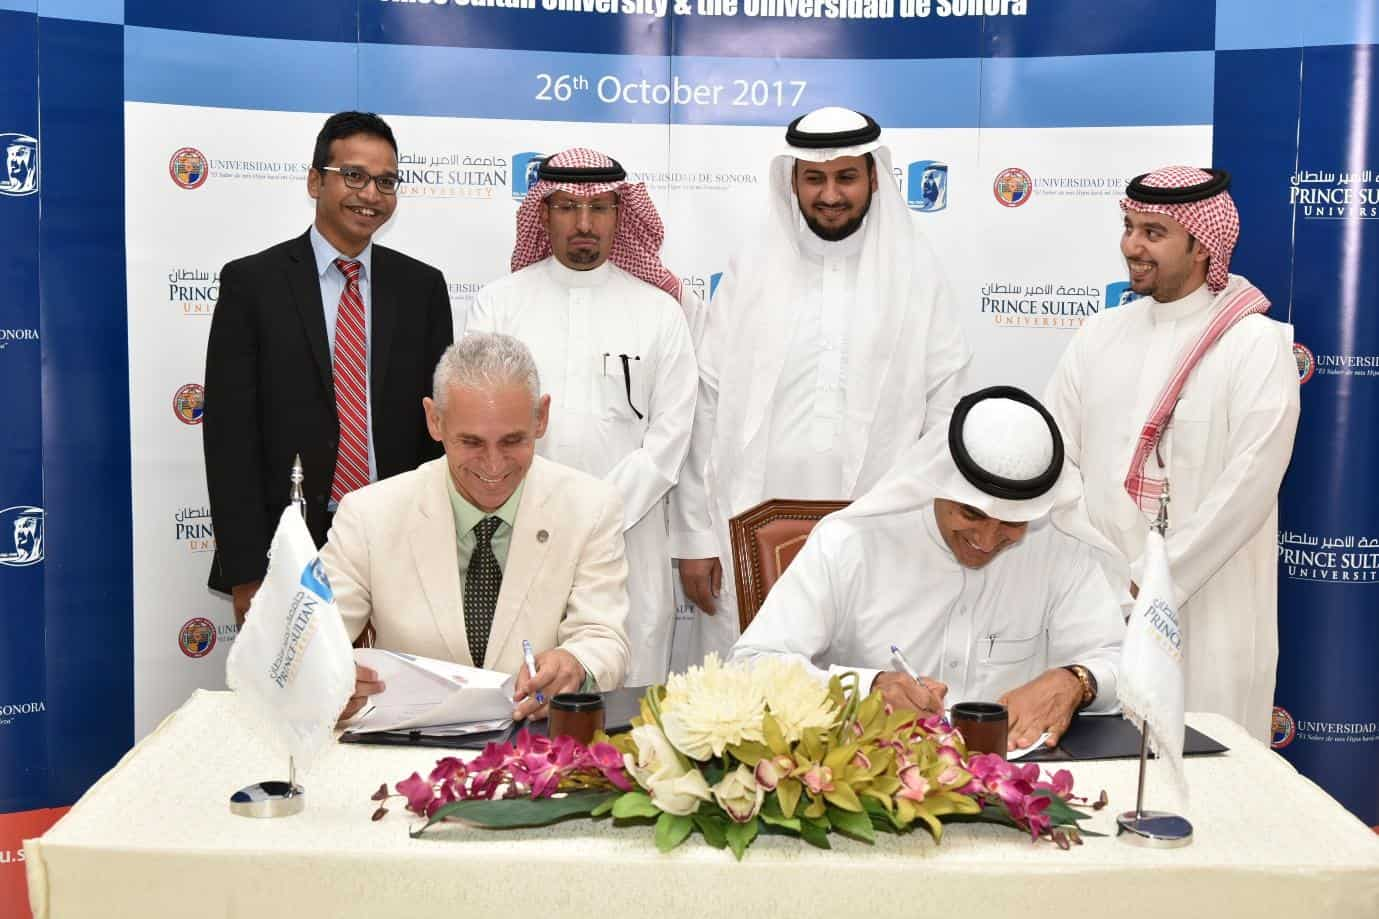 Research MOU between University of Sonora (UNISON), Mexico and Prince Sultan University